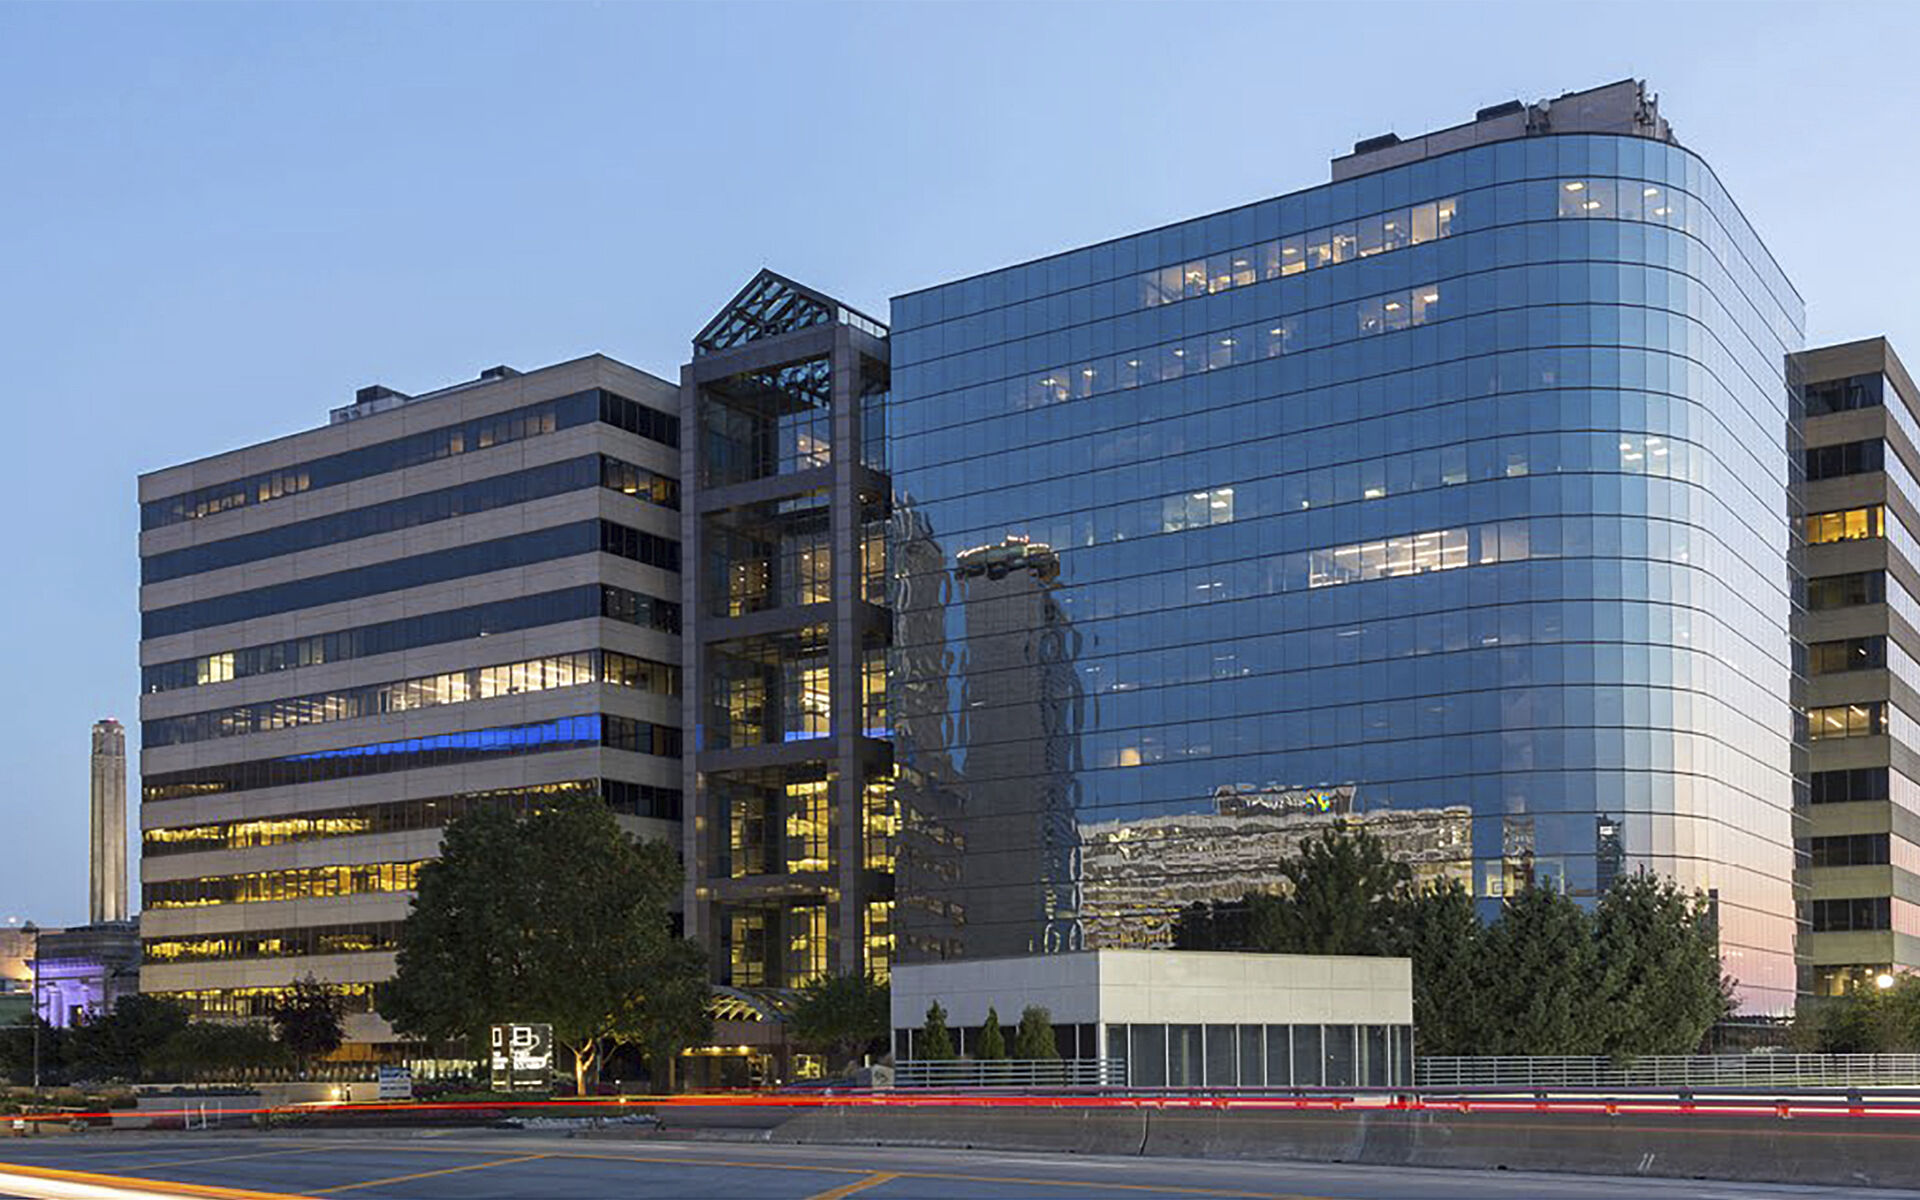 Turnkey Building Systems Upgrades - Two Pershing Square